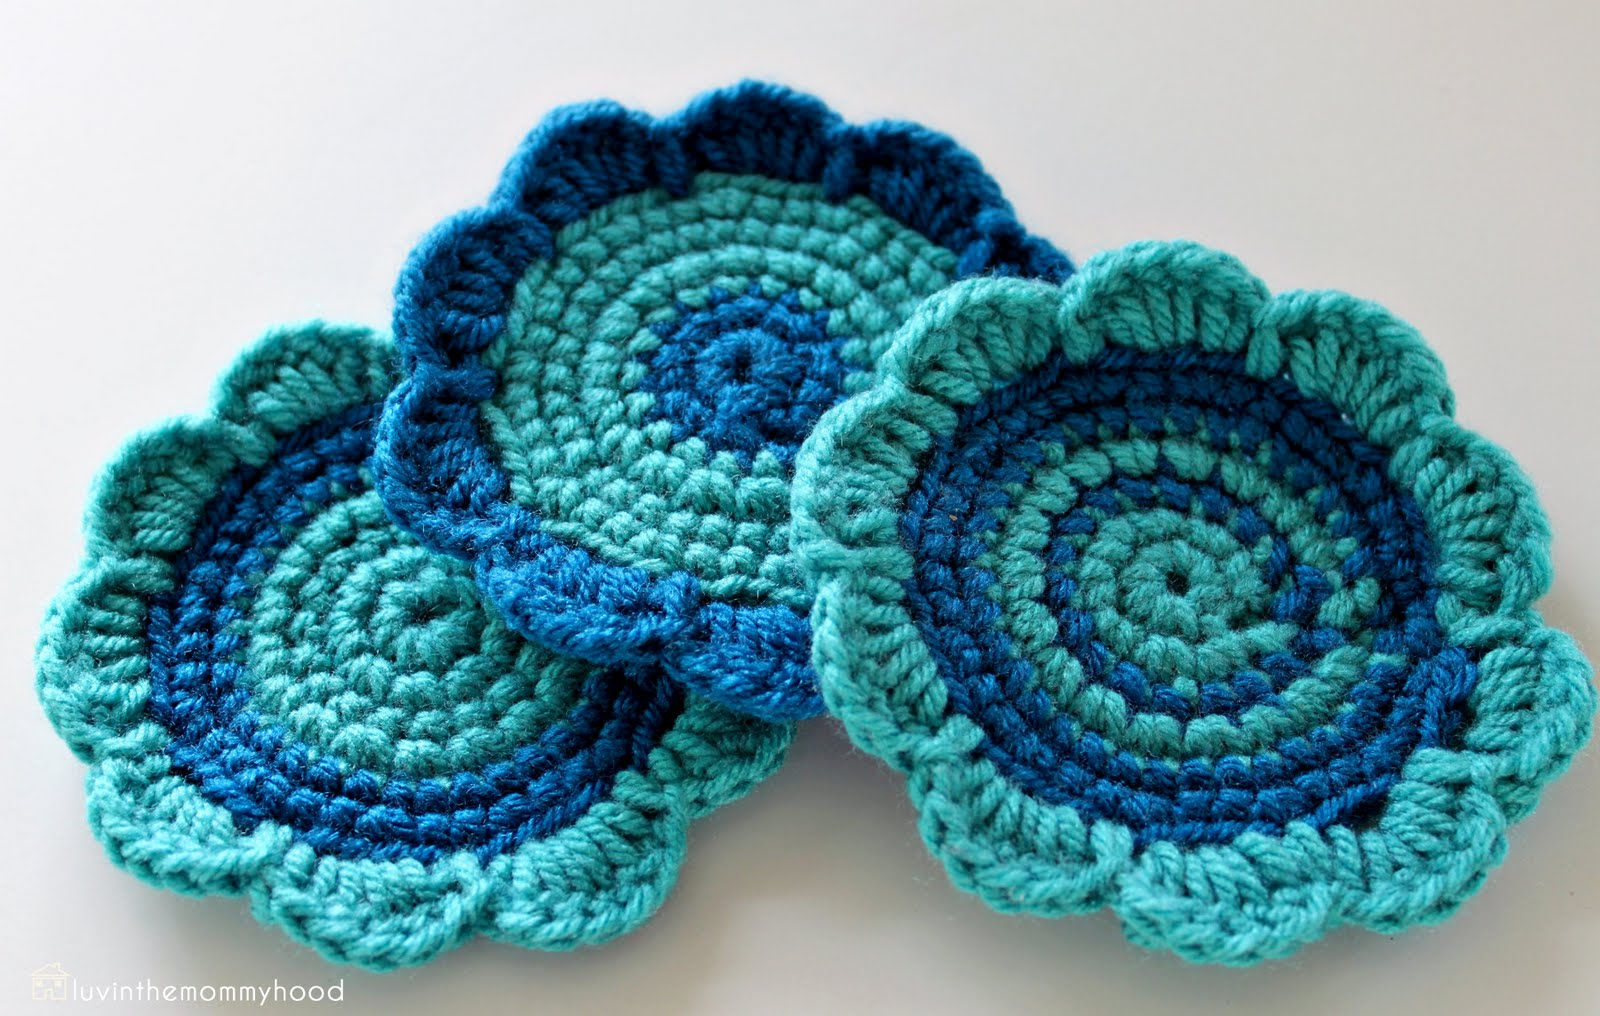 Crocheting Coasters : Domestic Goddess: Crocheted flower coasters